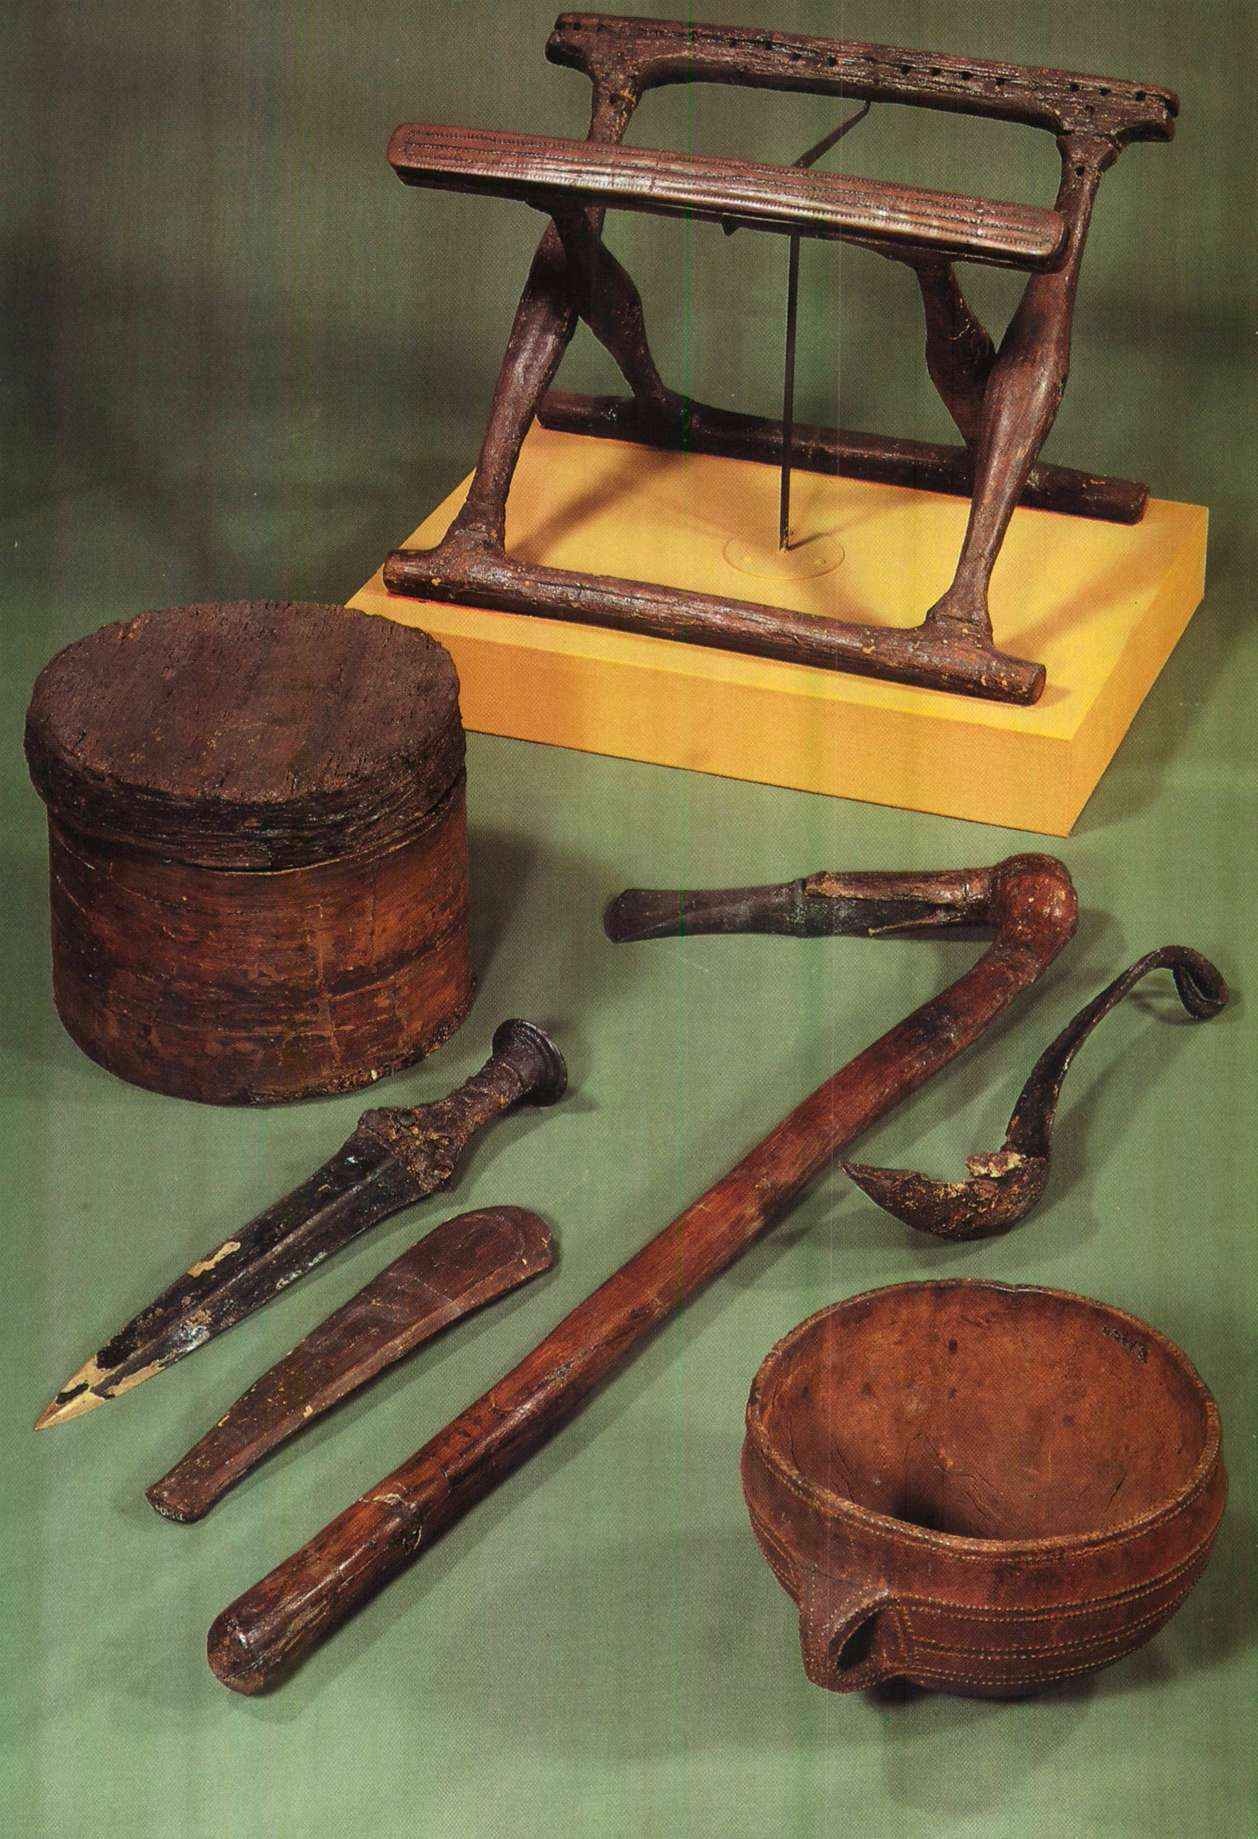 Ancient egyptian furniture - Artifacts Found In The Bronze Age Burial At Guldh J Jutland